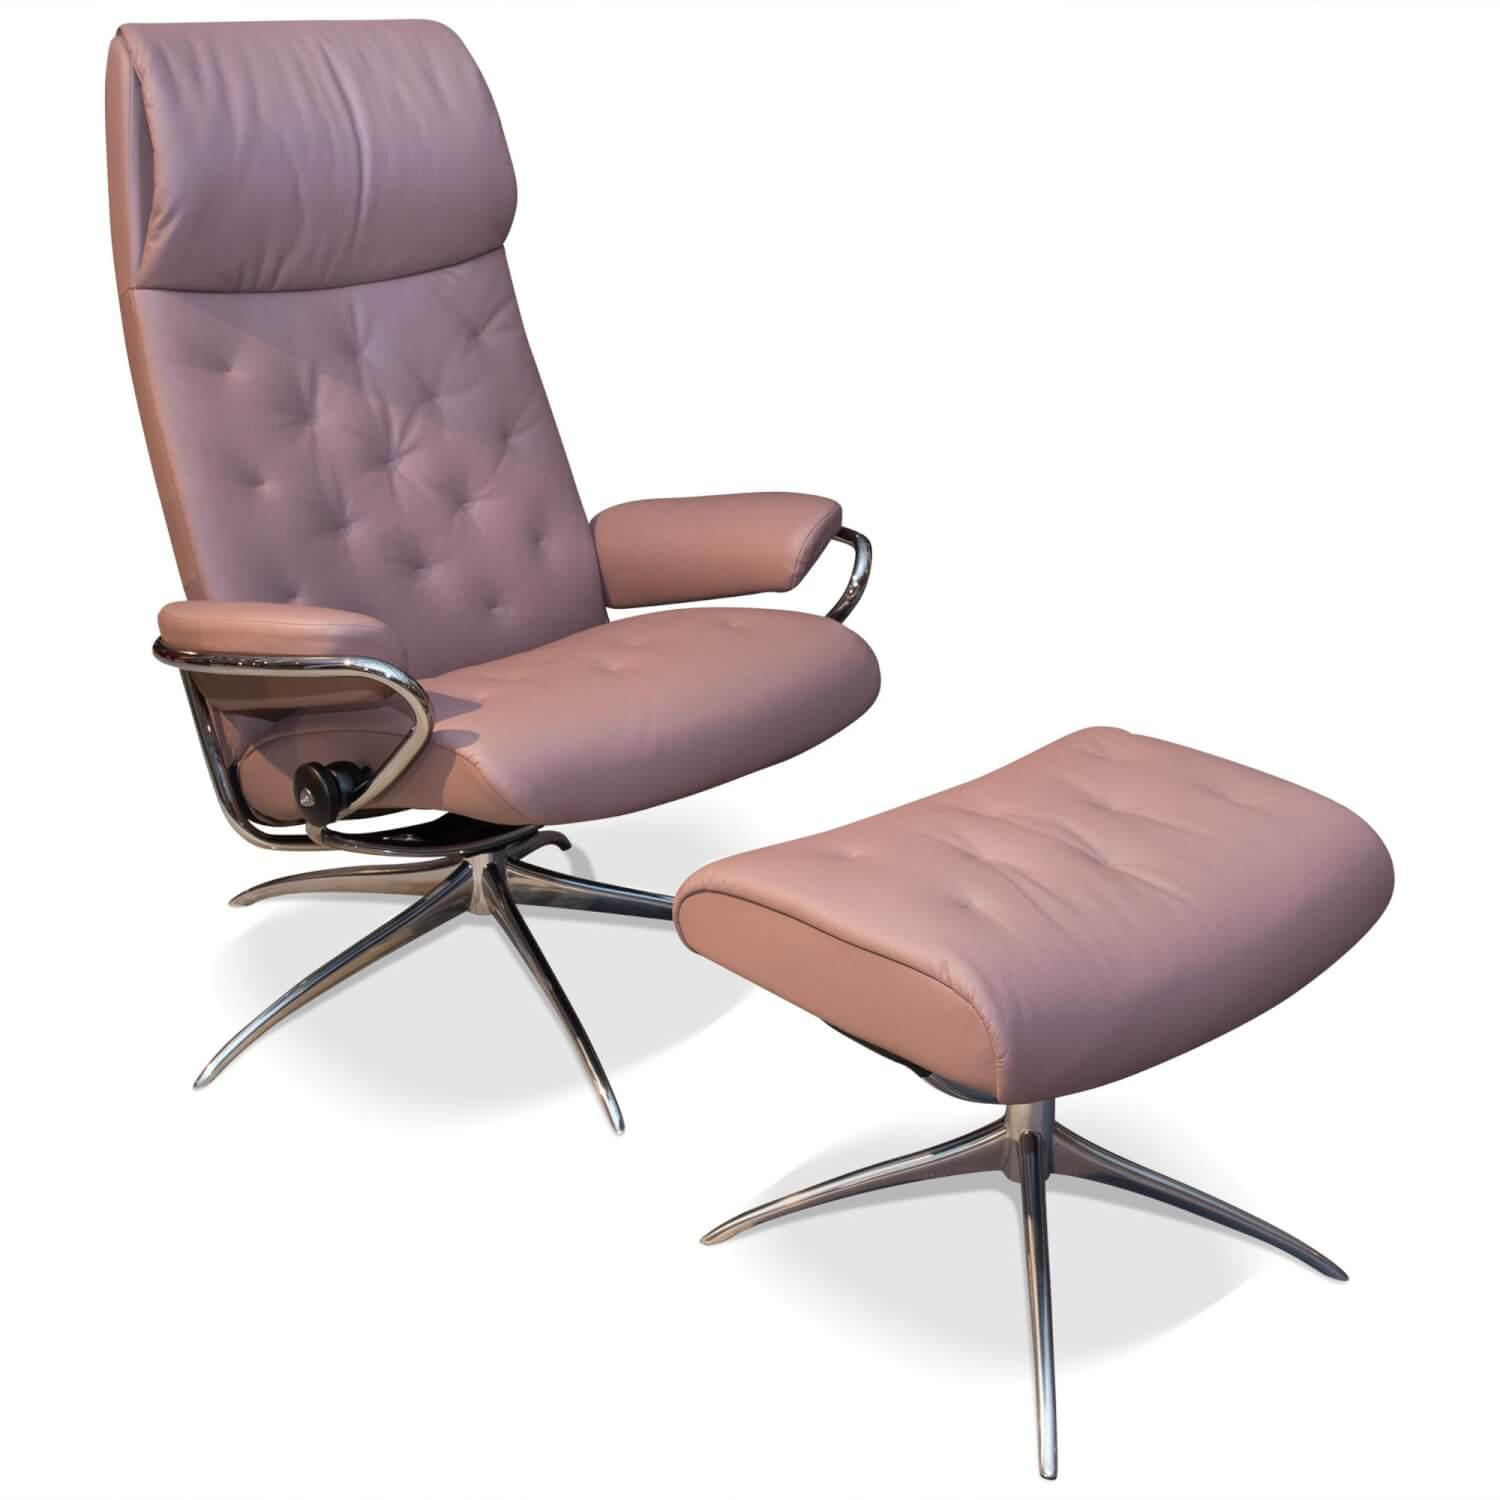 Sessel Metro Leder Paloma Rosa Dusty Rose Mit Hocker Stressless